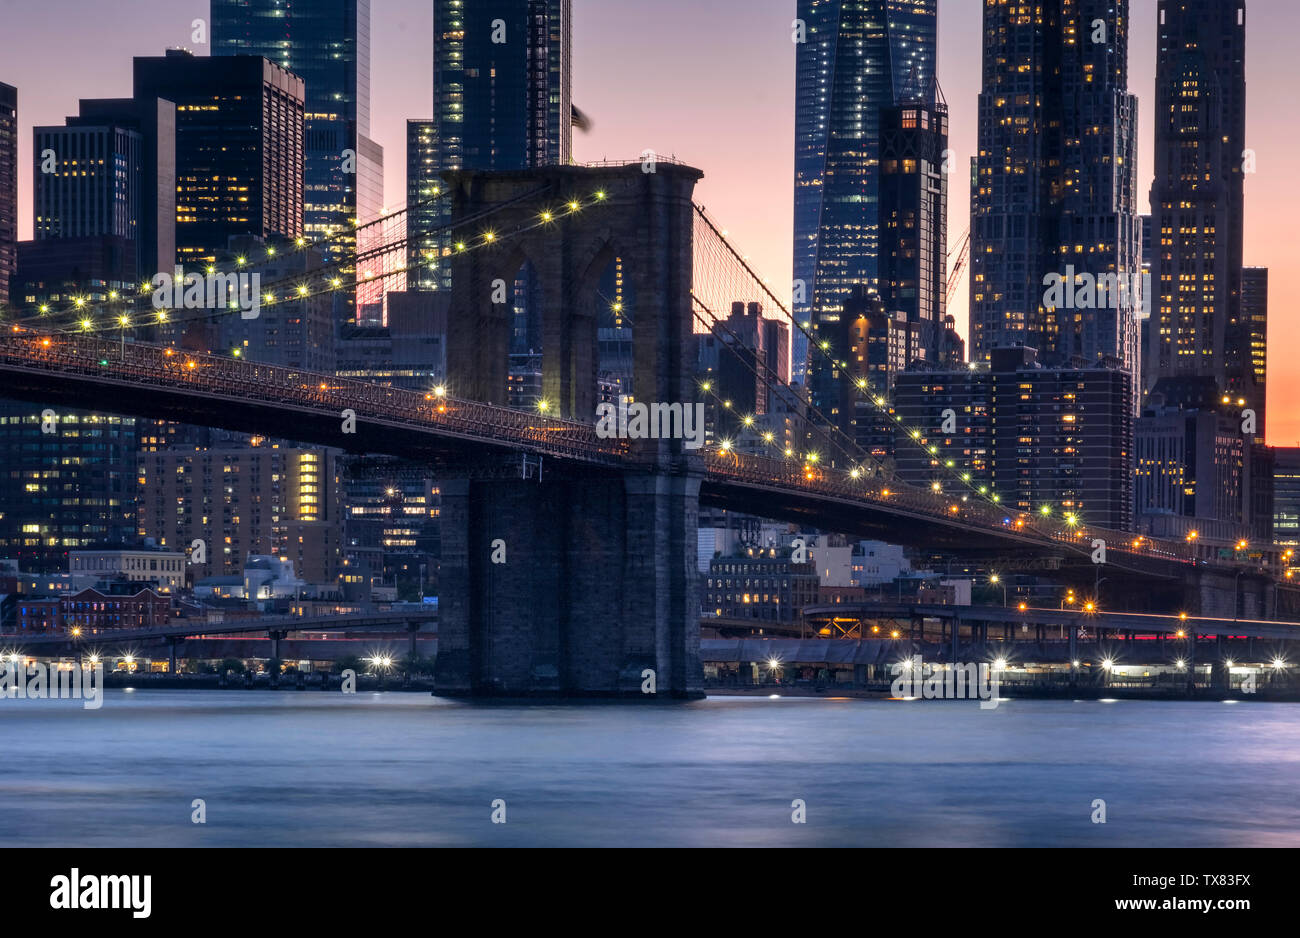 The Brooklyn Bridge over the East River at sunset, New York, USA Stock Photo